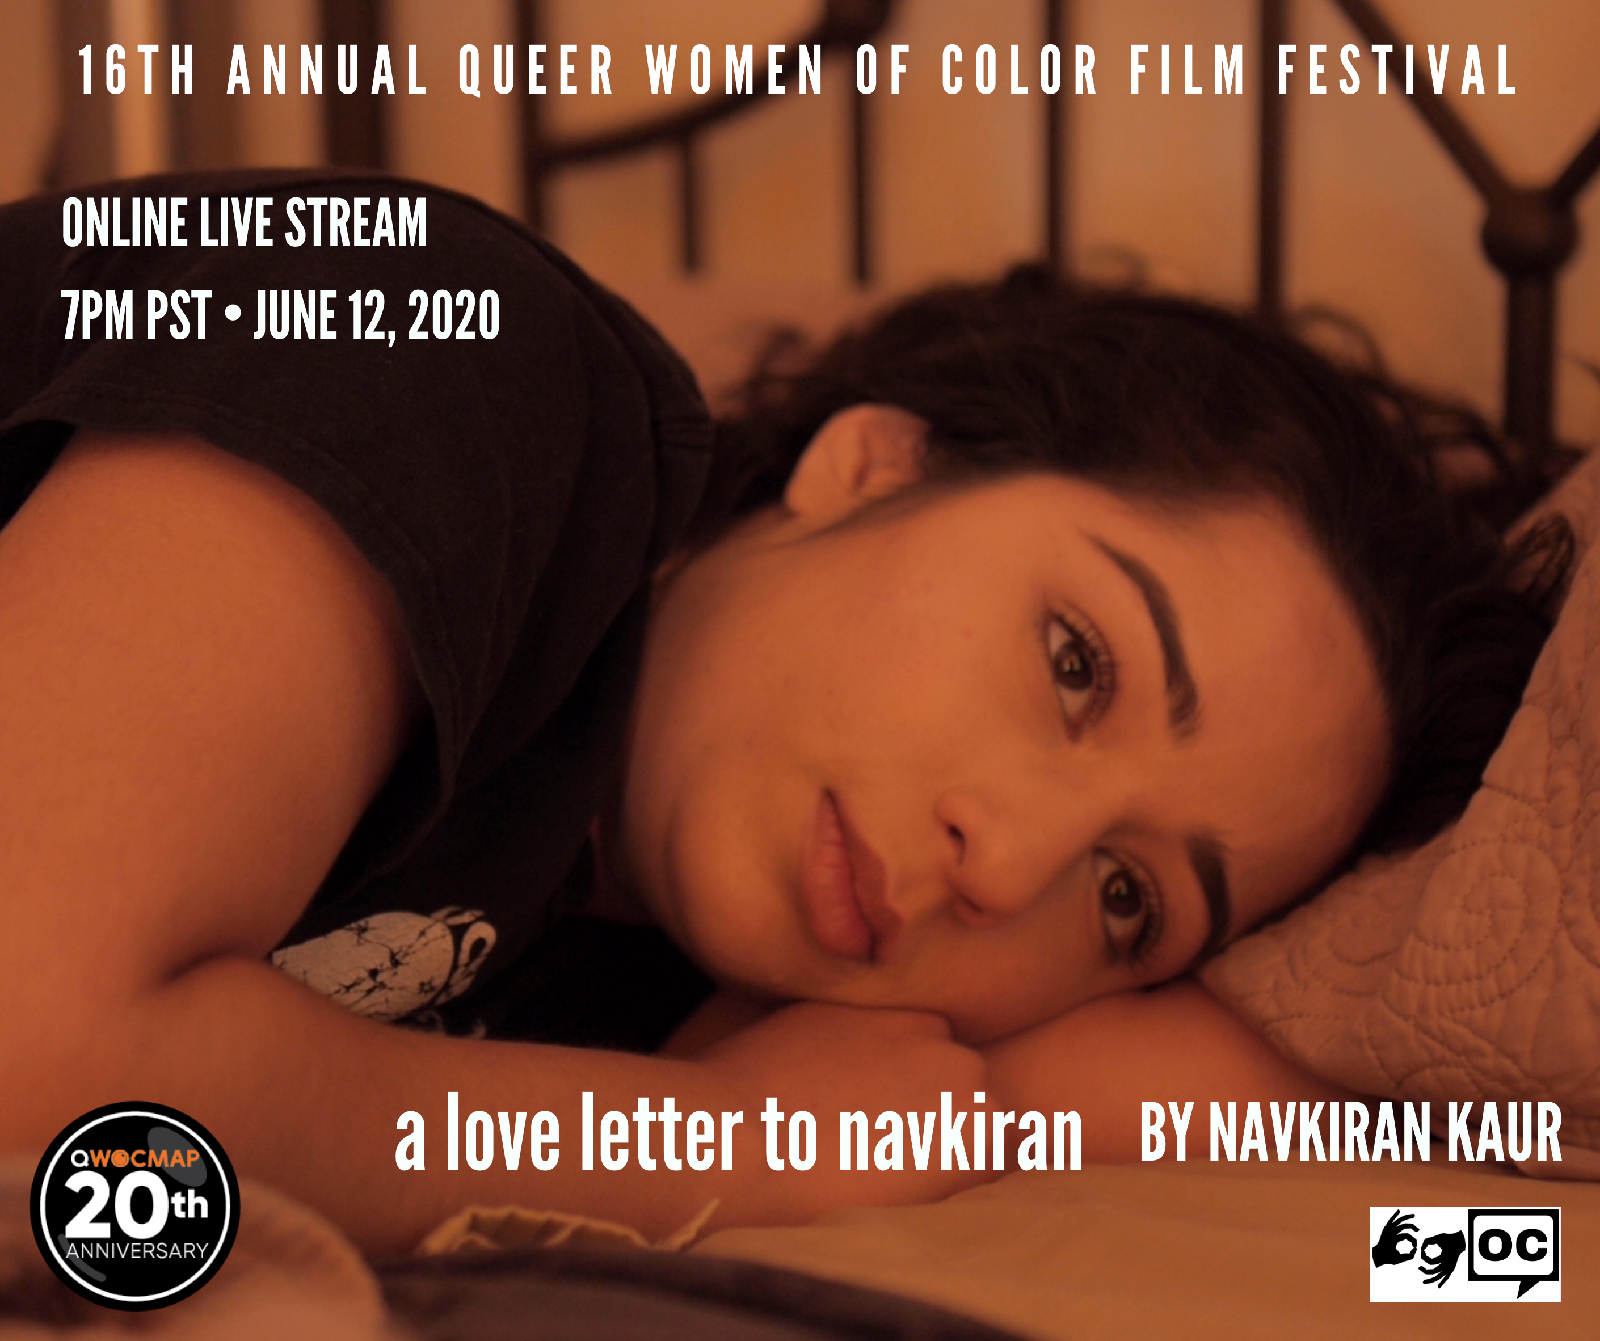 A queer Sikh Punjabi nonbinary femme with medium brown skin and dark brown hair lays in bed looking reflectively to her right. The top of the image reads 16th Annual Queer Women of Color Film Festival. Text below reads A Love Letter to Navkiran by Navkiran Kaur. The QWOCMAP logo is on the bottom left, ASL & open captions logos are on the bottom right. Text below reads ONLINE LIVE STREAM 7PM PST JUNE 12, 2020.